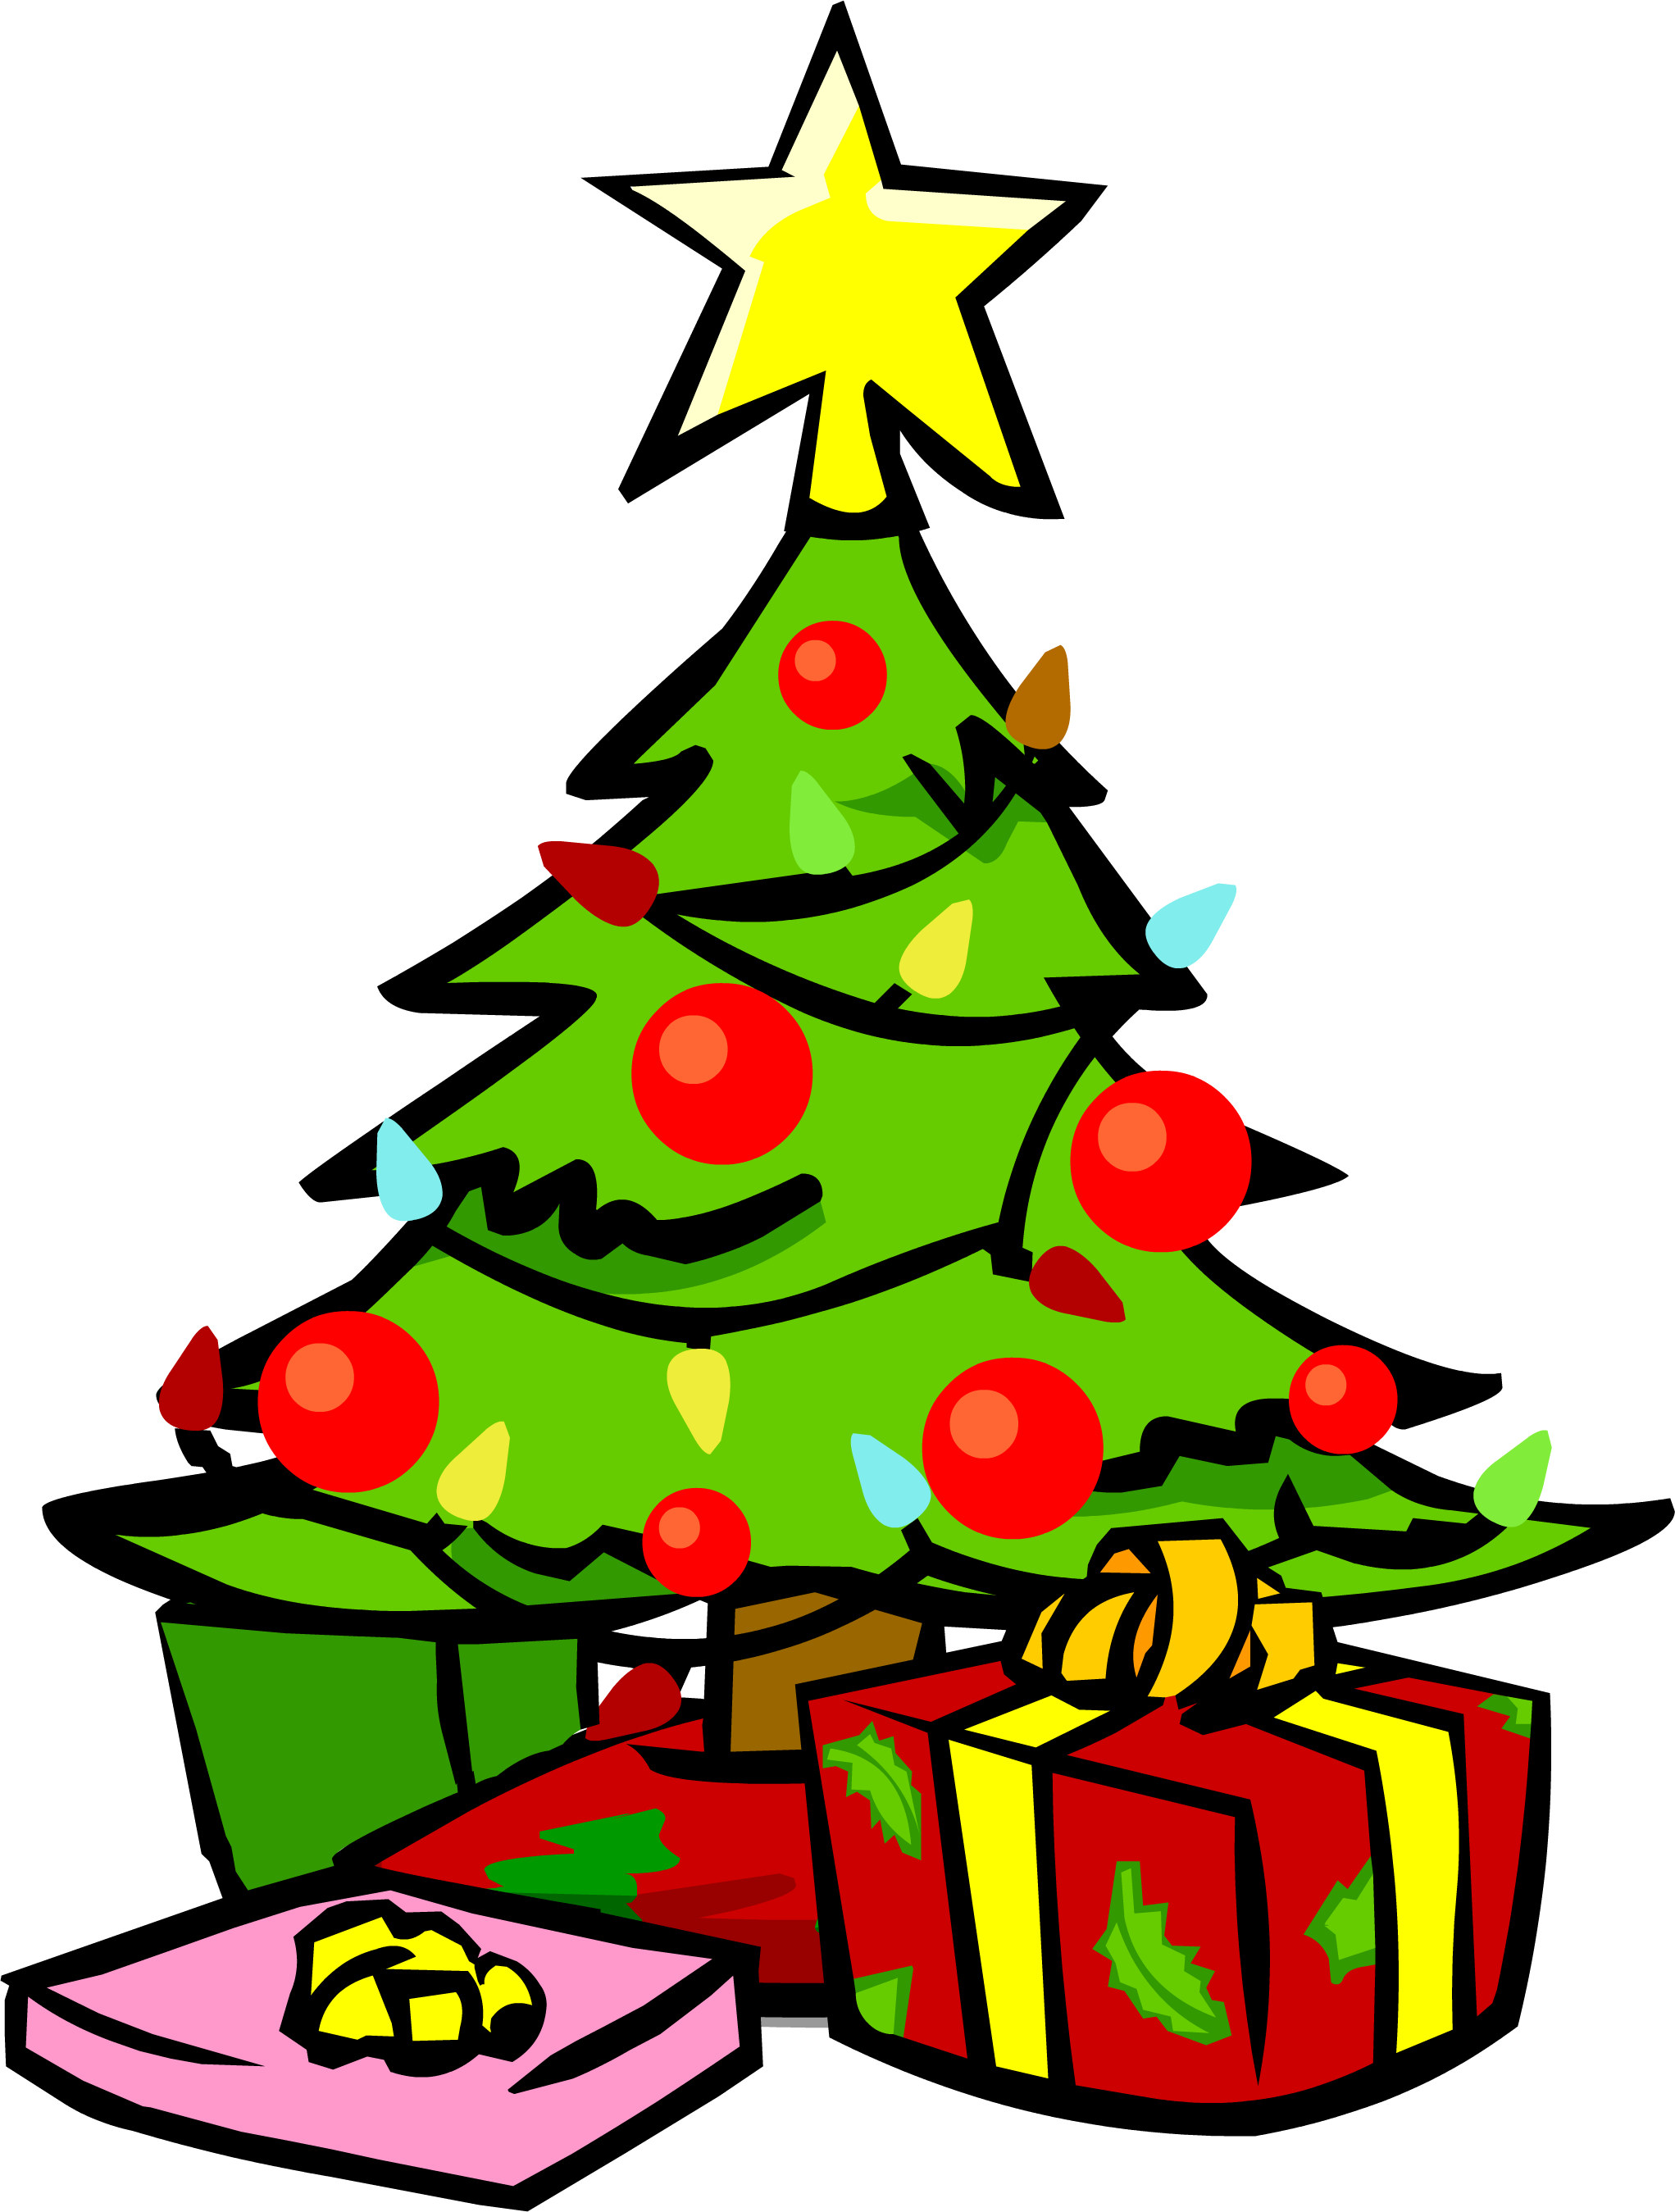 Christmas tree shop clipart vector free download Image - Small Christmas Tree sprite 015.png | Club Penguin Wiki ... vector free download